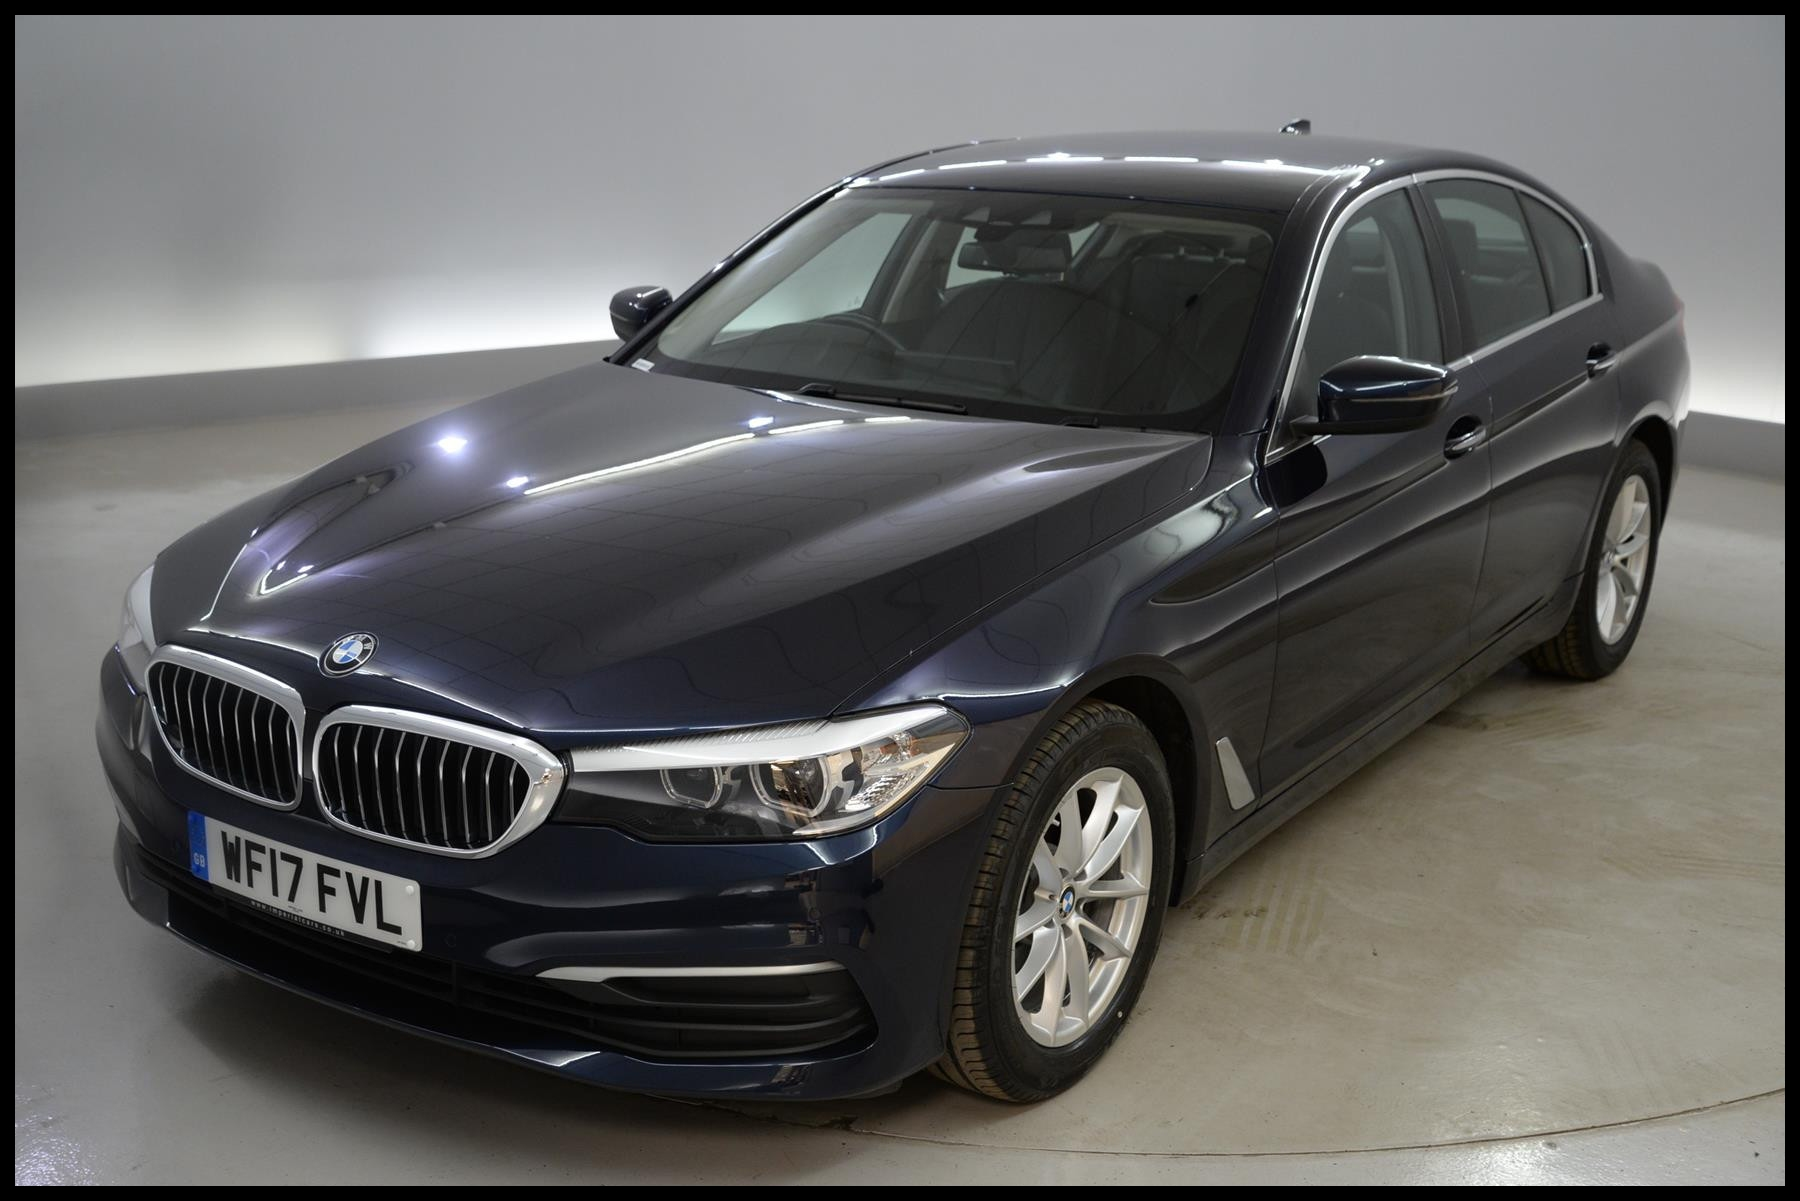 Bmw Service History Idrive Unique Used 2017 Bmw 5 Series 520d Se 4dr Auto Xenons Idrive